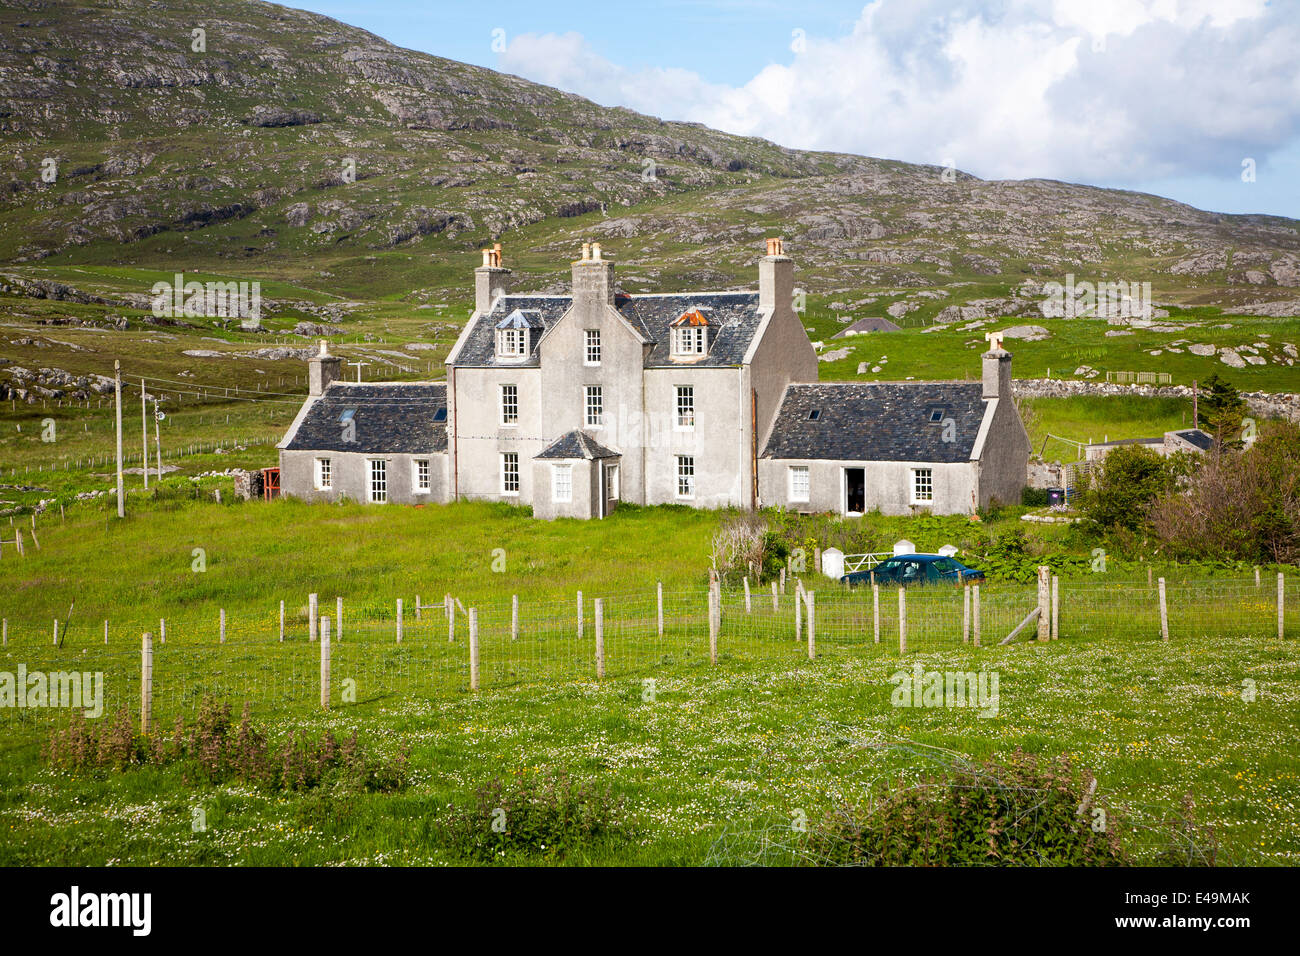 Historic Manse House Isle of Barra, Outer Hebrides, Scotland - Stock Image